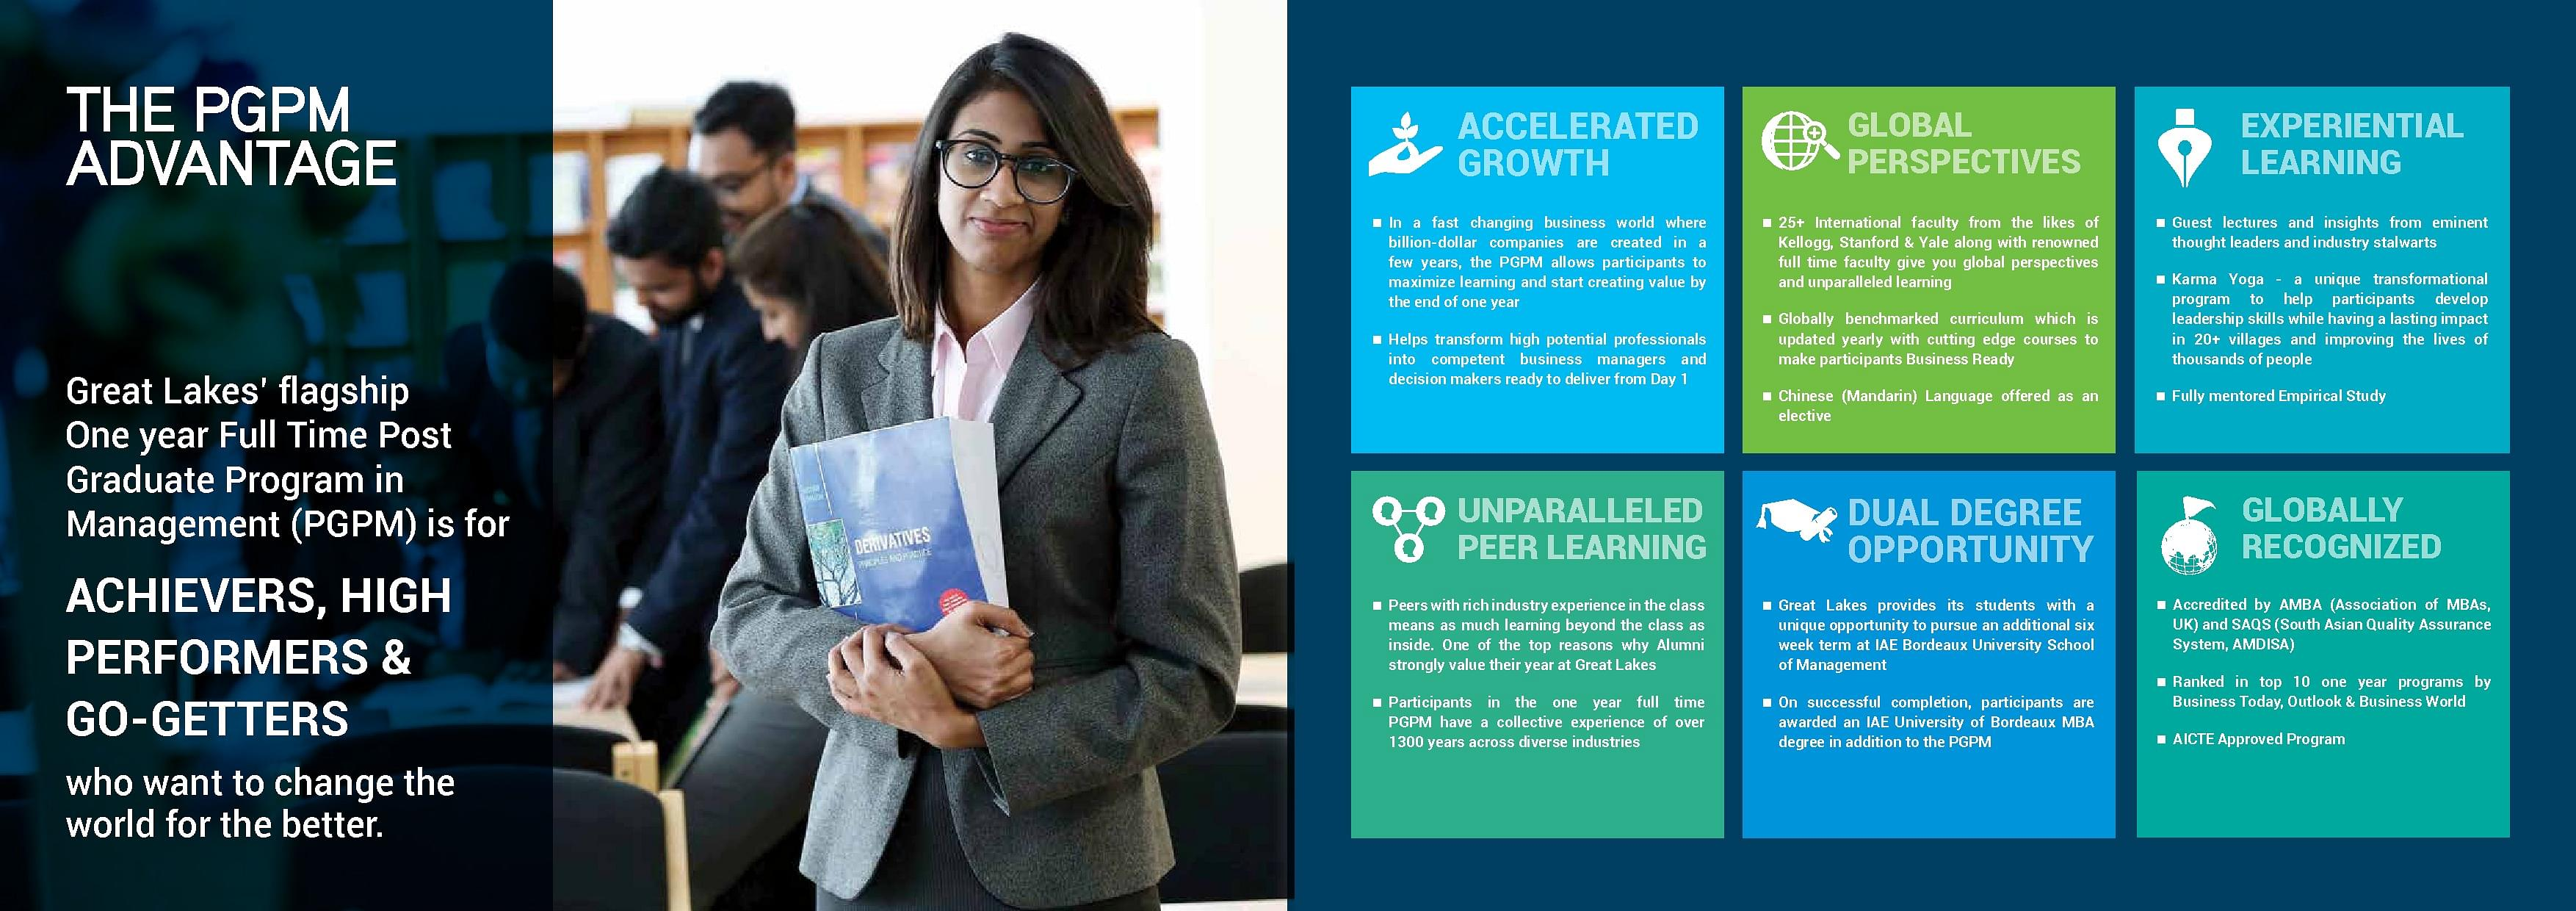 Great Lakes Institute of Management Chennai - Courses, Fee